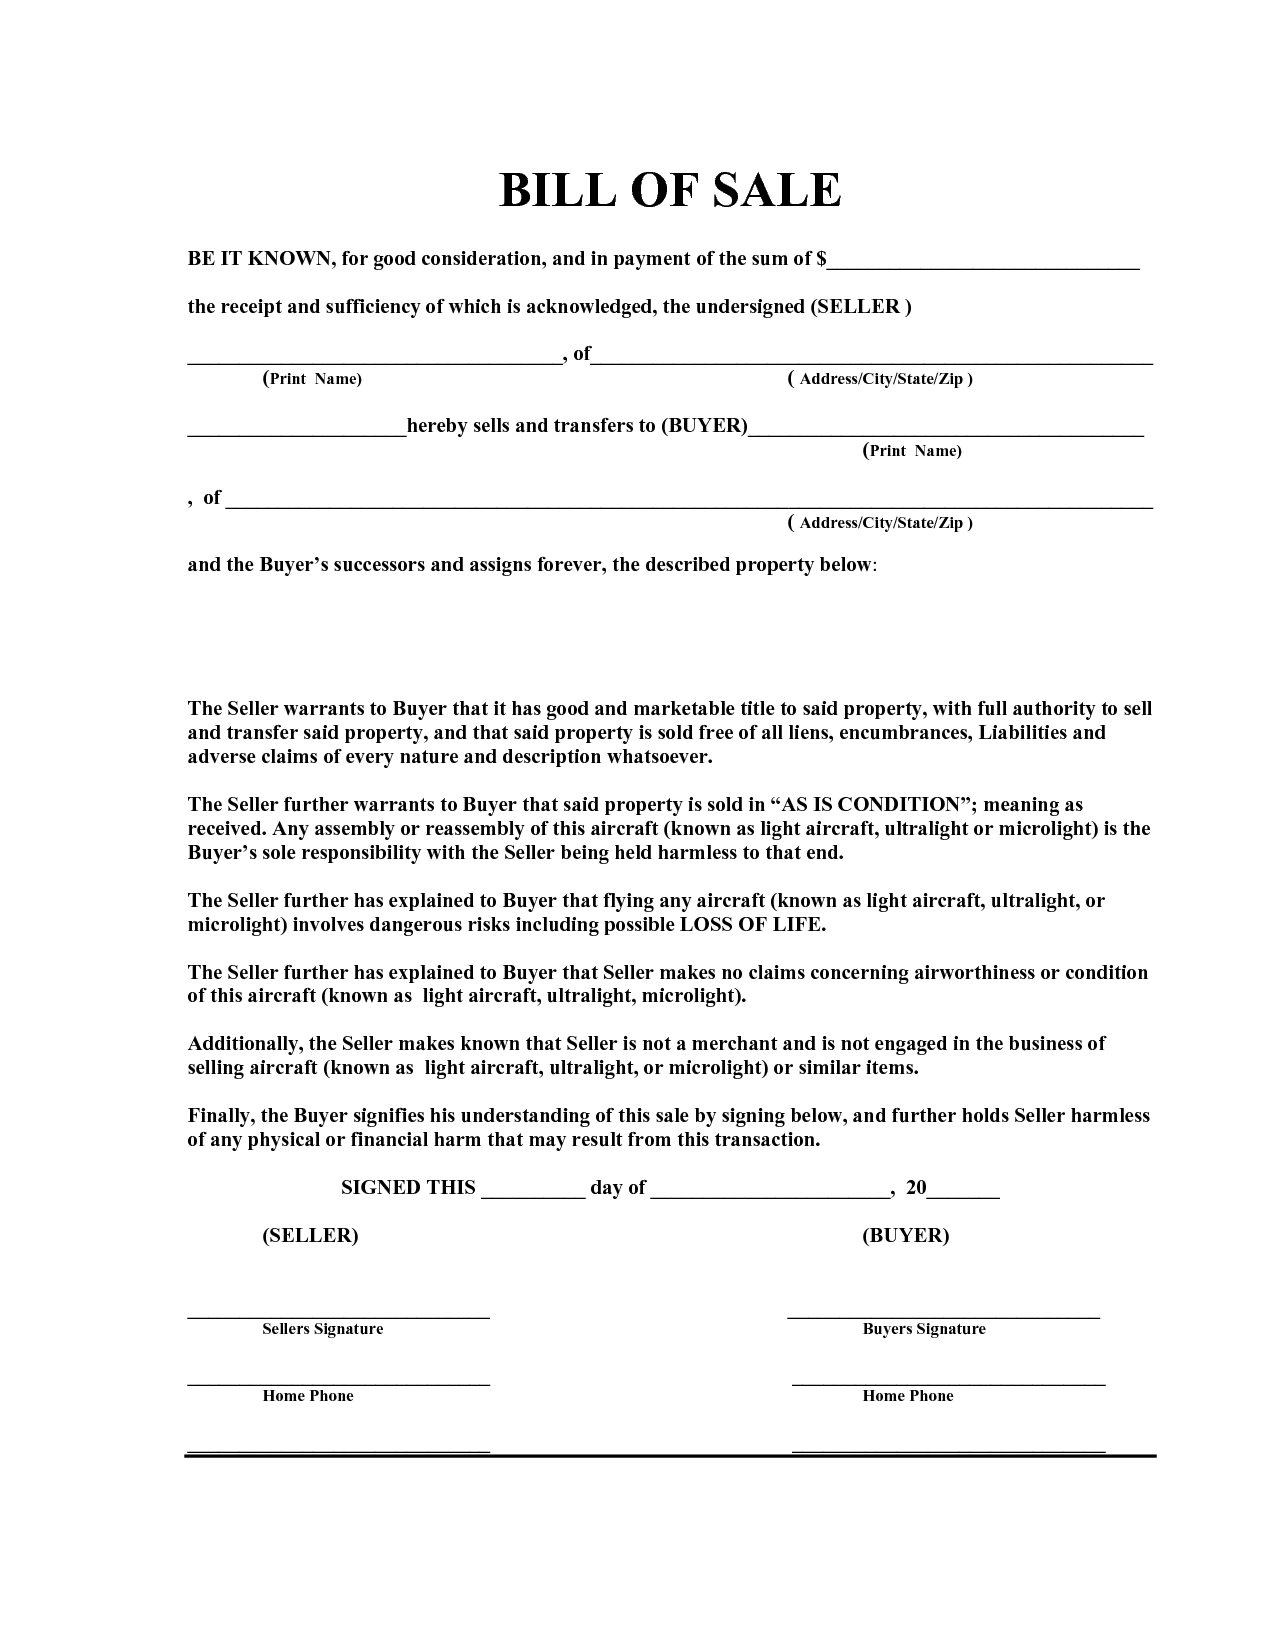 Free bill of sale template pdf by marymenti as is bill of sale real state pinterest for Free bill of sale ga